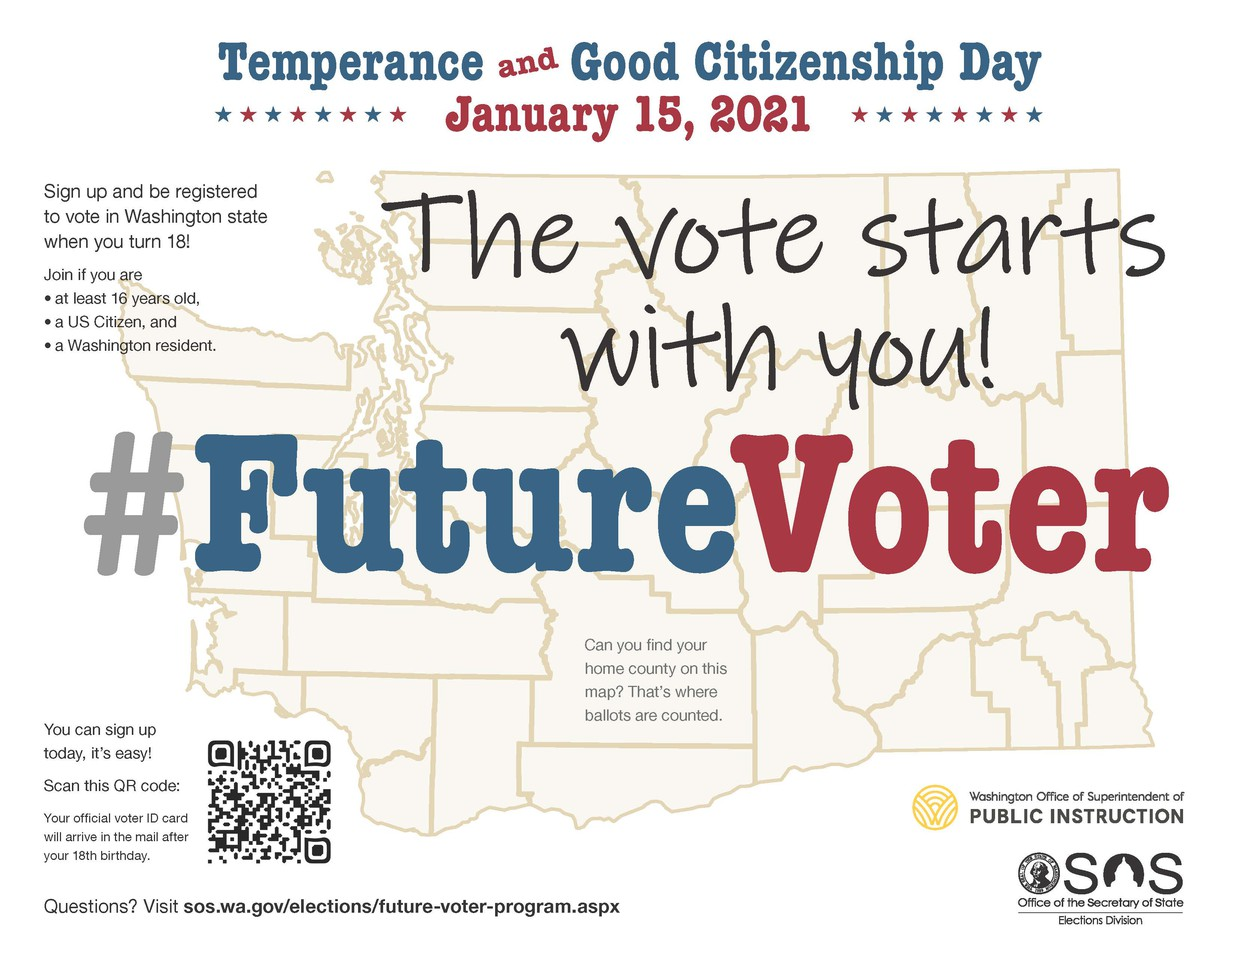 Temperance and Good Citizenship Day January 15, 2021